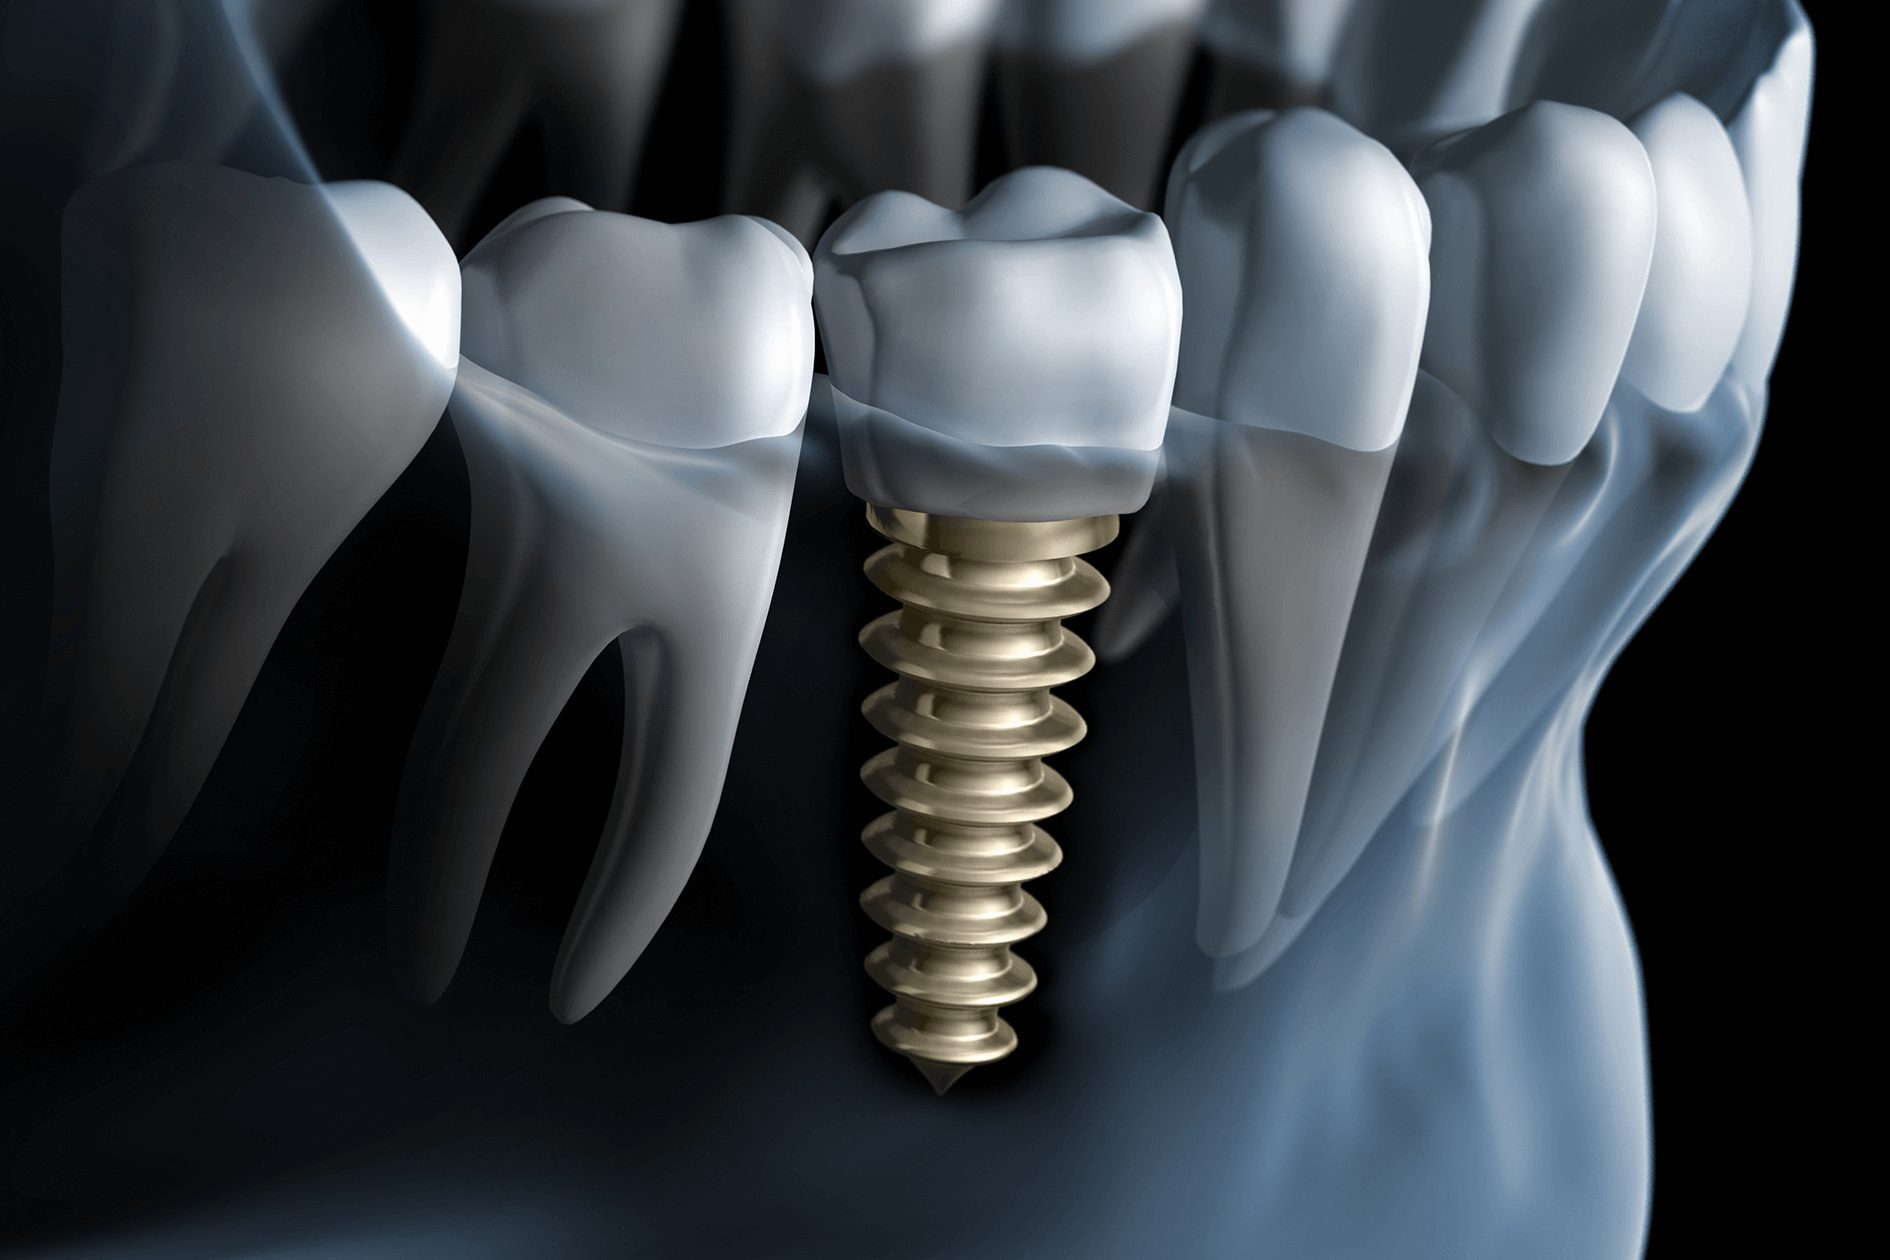 dental implant hospital dubai, uae